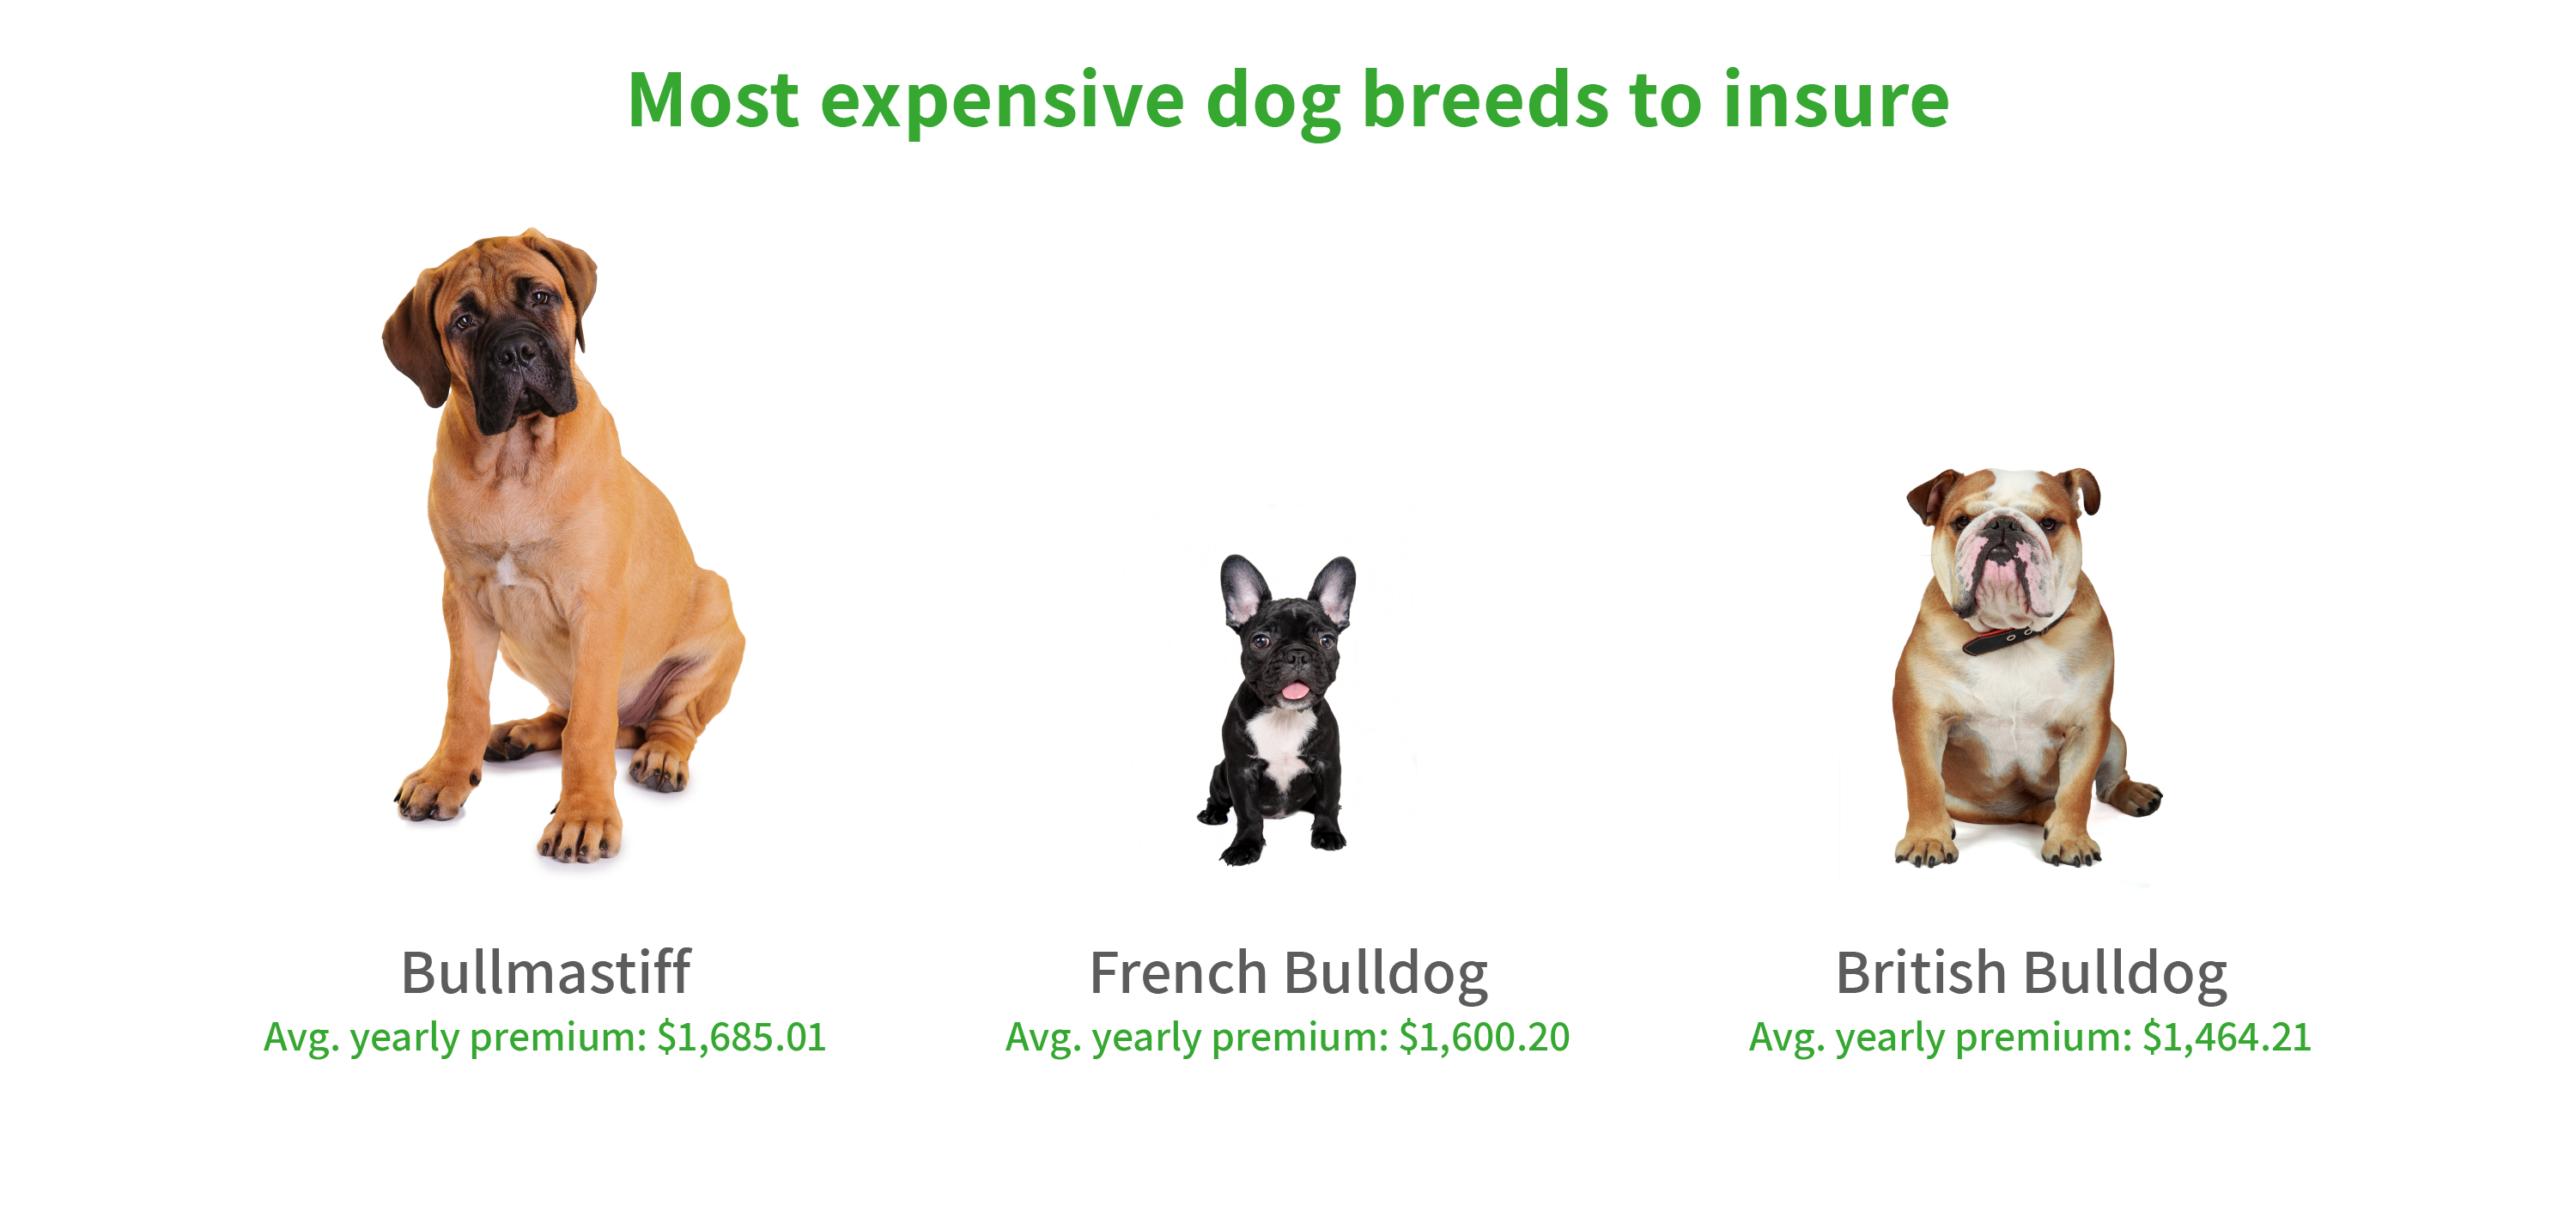 Graphic showing most expensive dog breeds to insure.